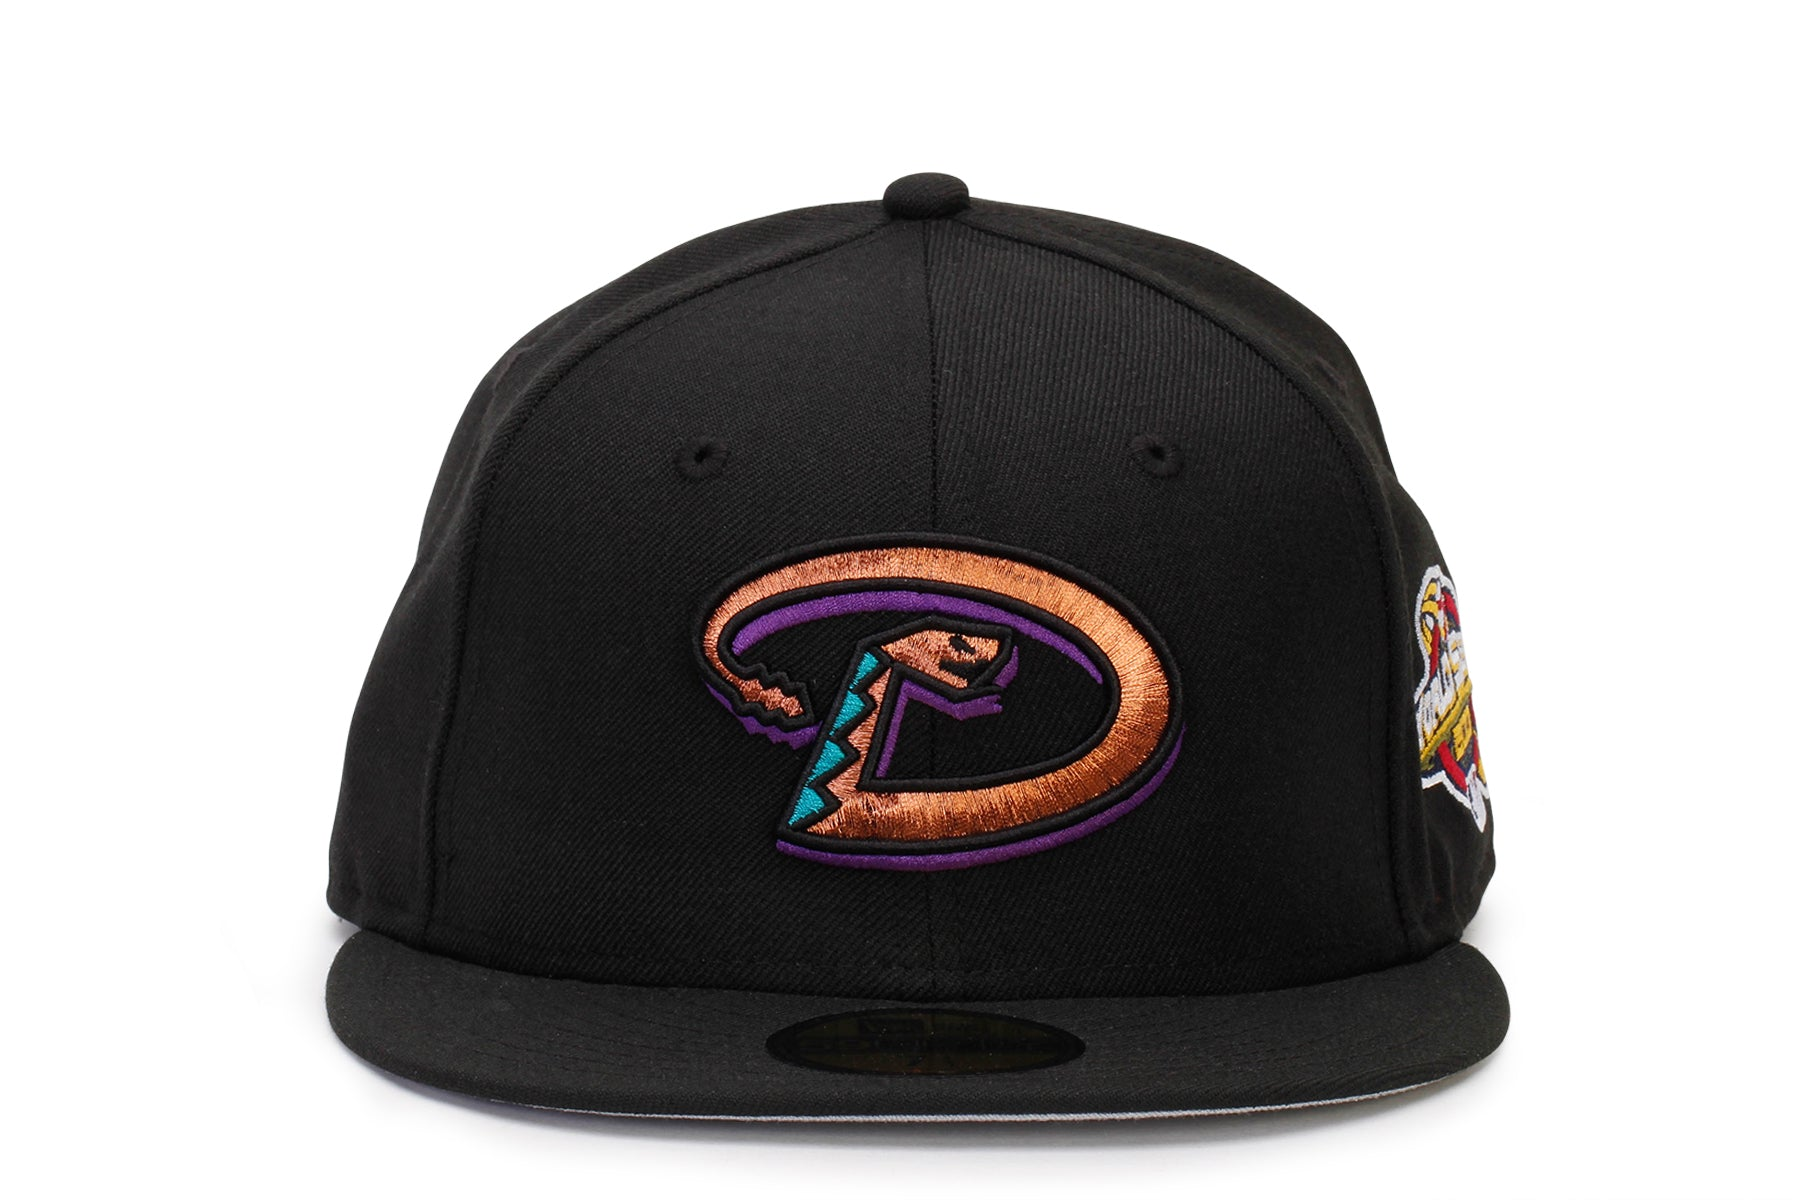 59FIFTY Arizona Diamondbacks WS 2001